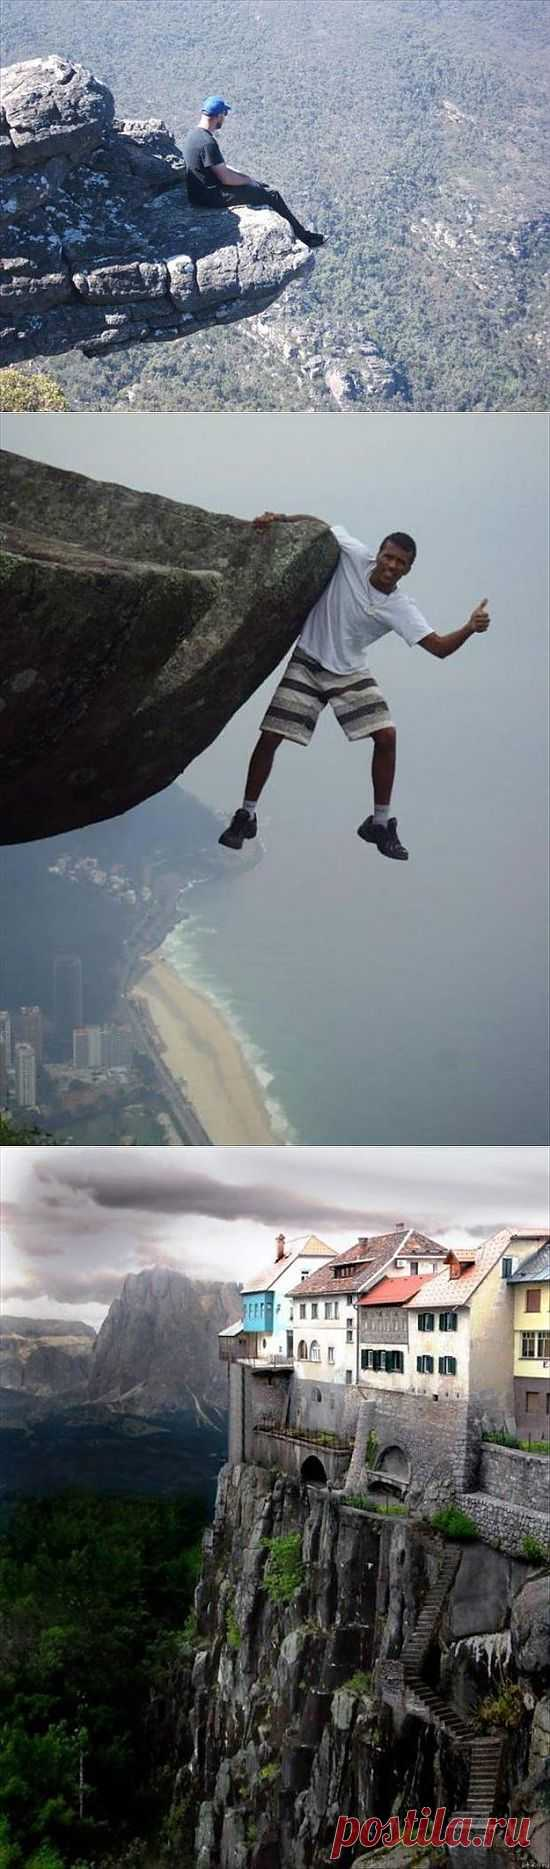 So You're Afraid Of Heights (20 Photos) | FunCage